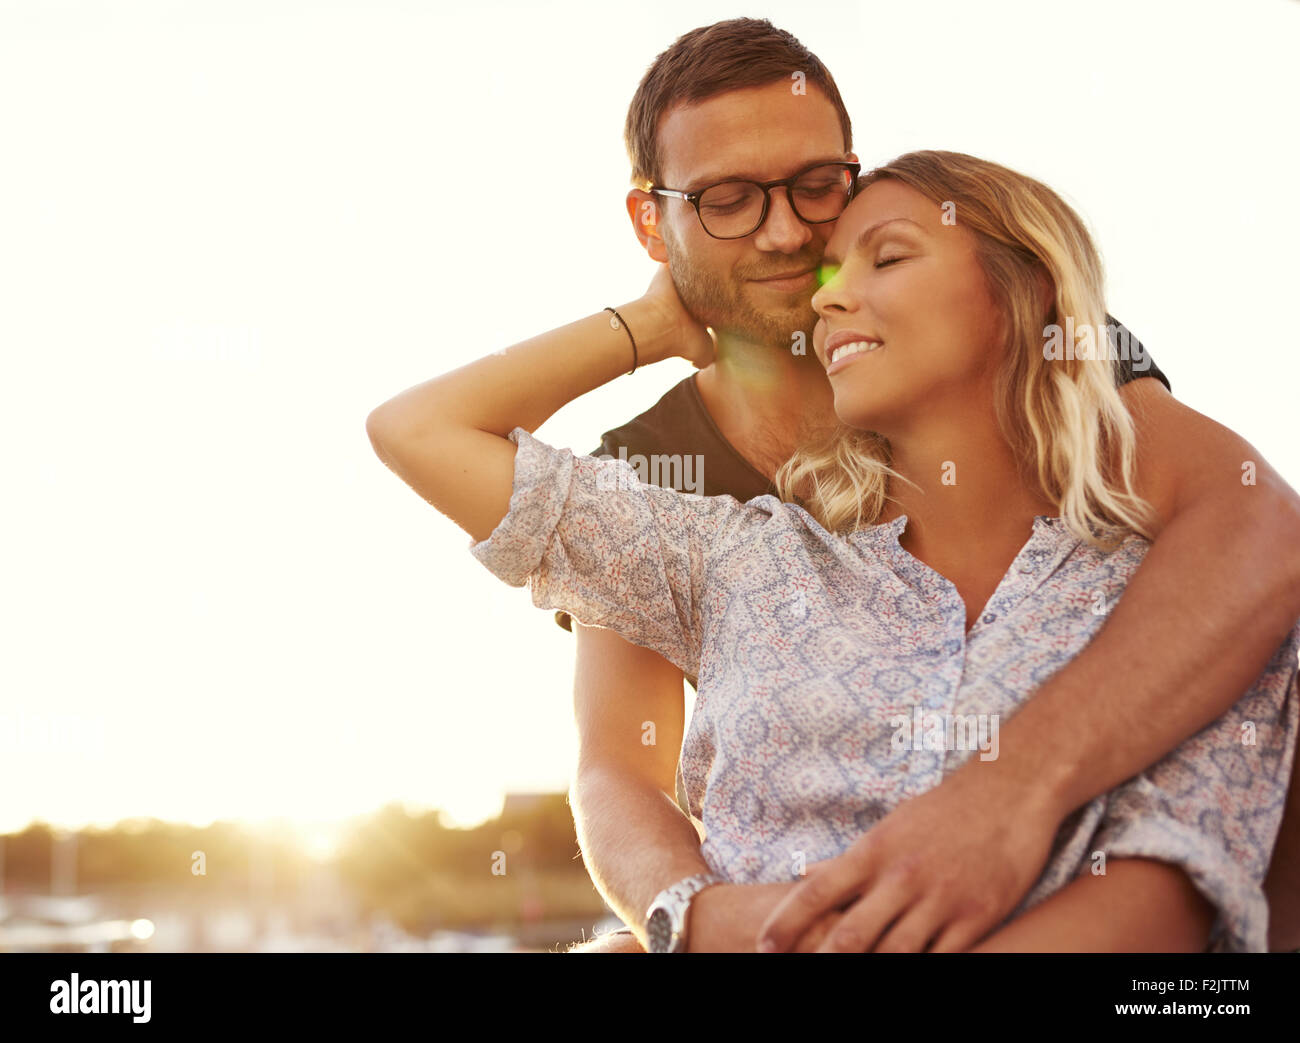 Husband And Wife on Vacation on a Warm Summer - Stock Image